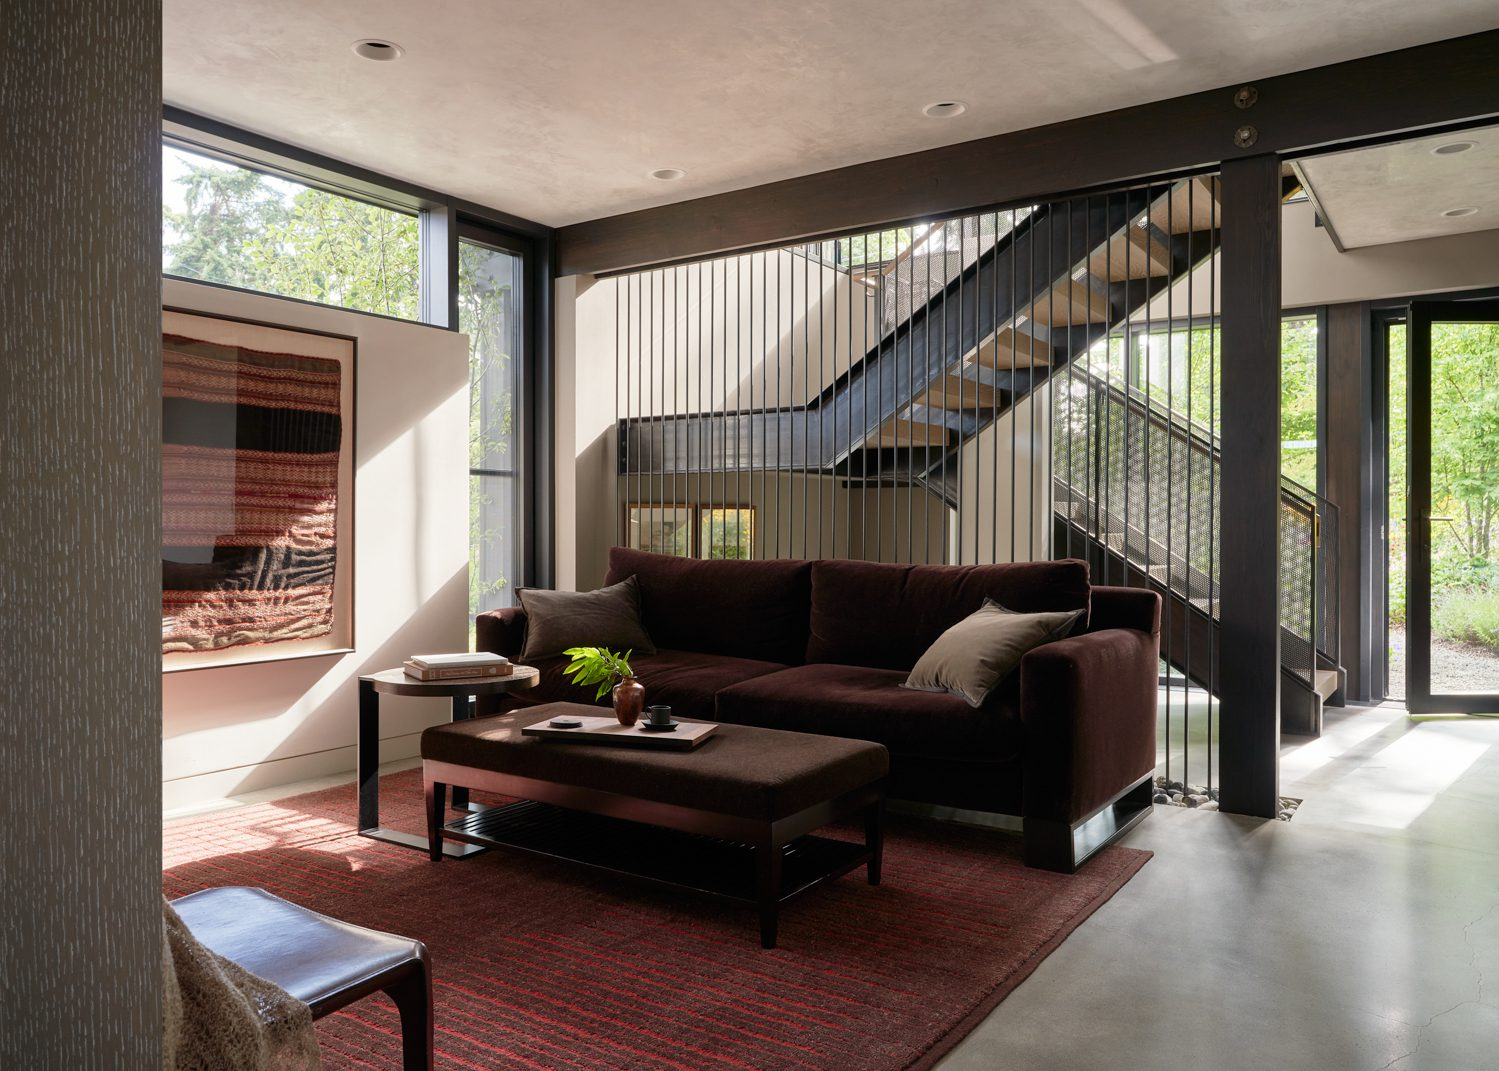 The home's previous maze of small rooms was transformed into an open great room with a new stair leading to a lower-level primary suite, replacing an underutilized garage.